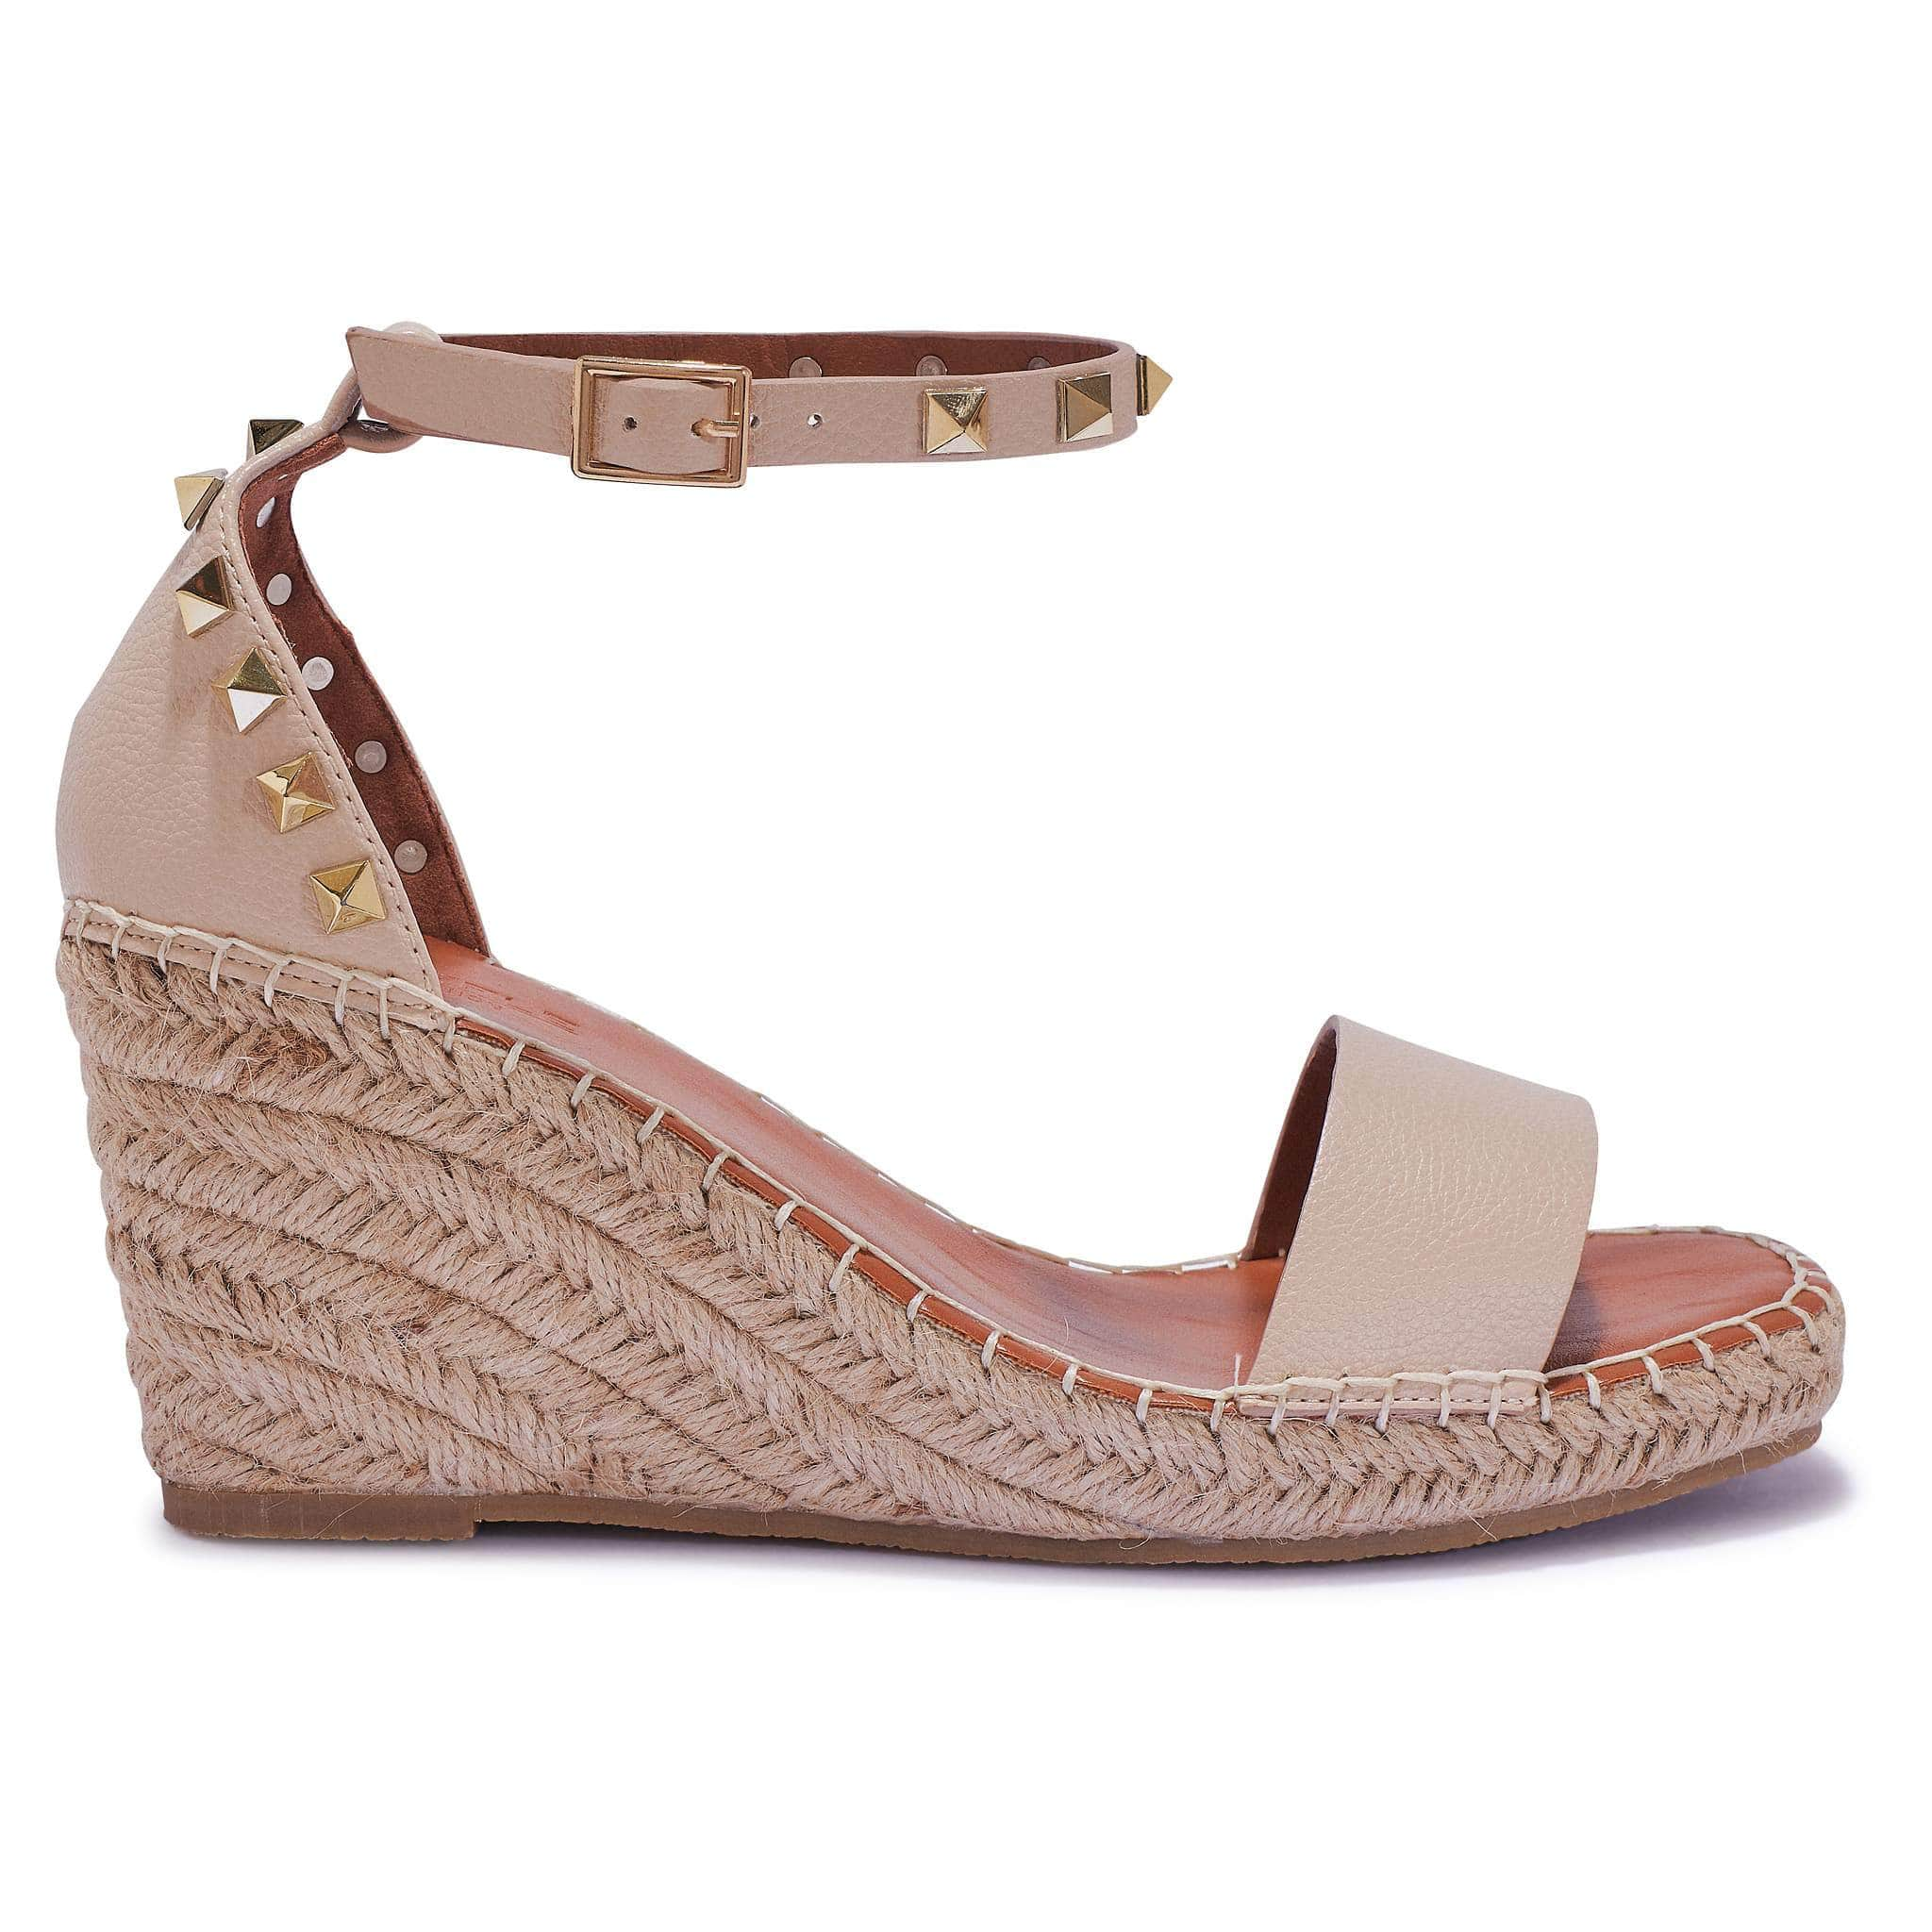 Nude PU Espadrille Wedges with Gold Stud Details